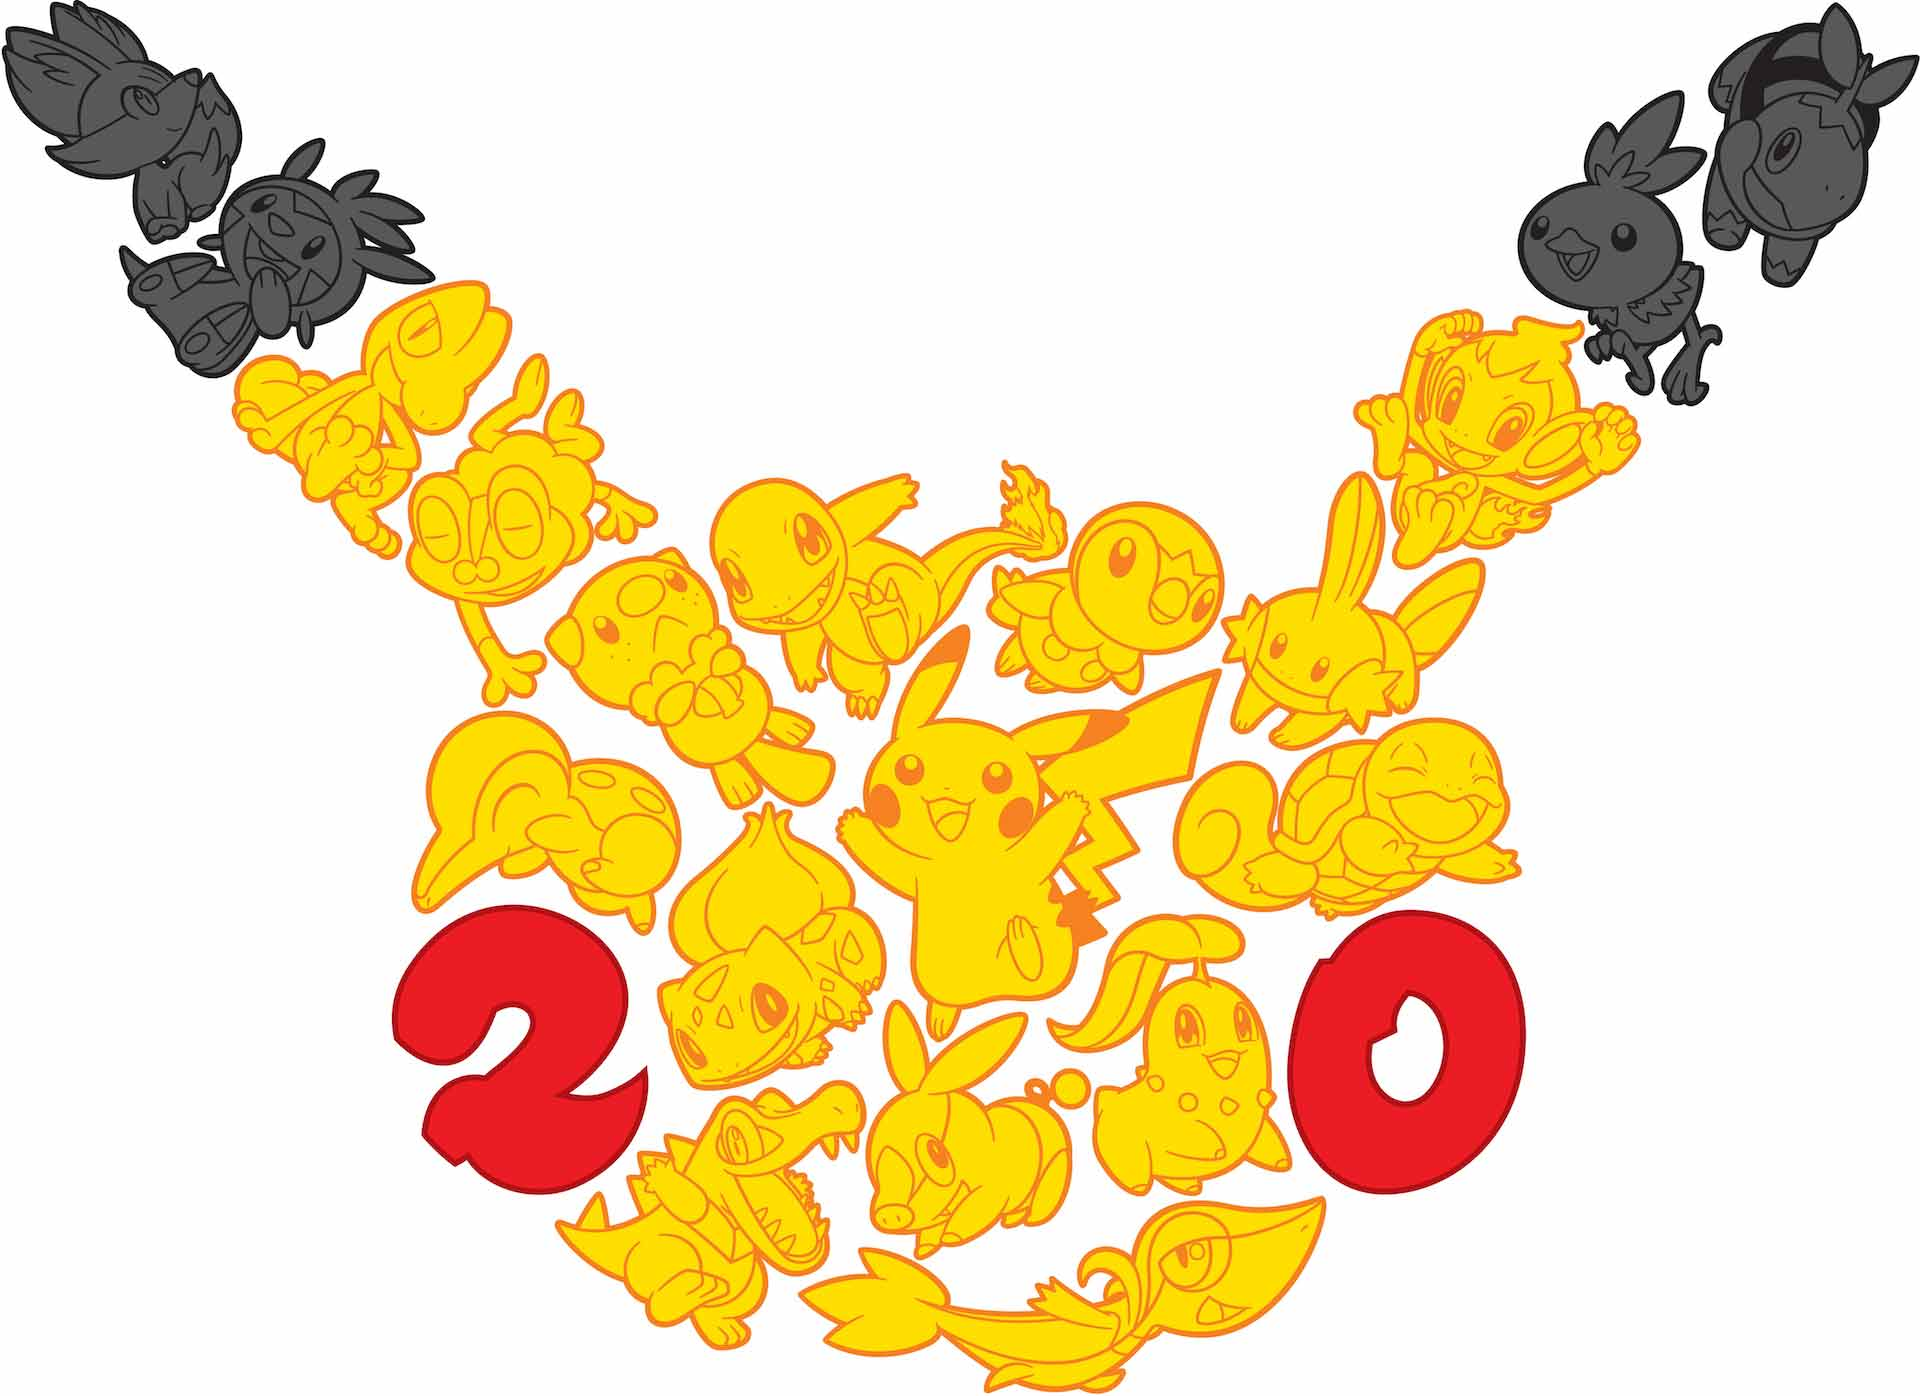 Pokemon 20th Anniversary Logo Super Bowl Commercial Planned